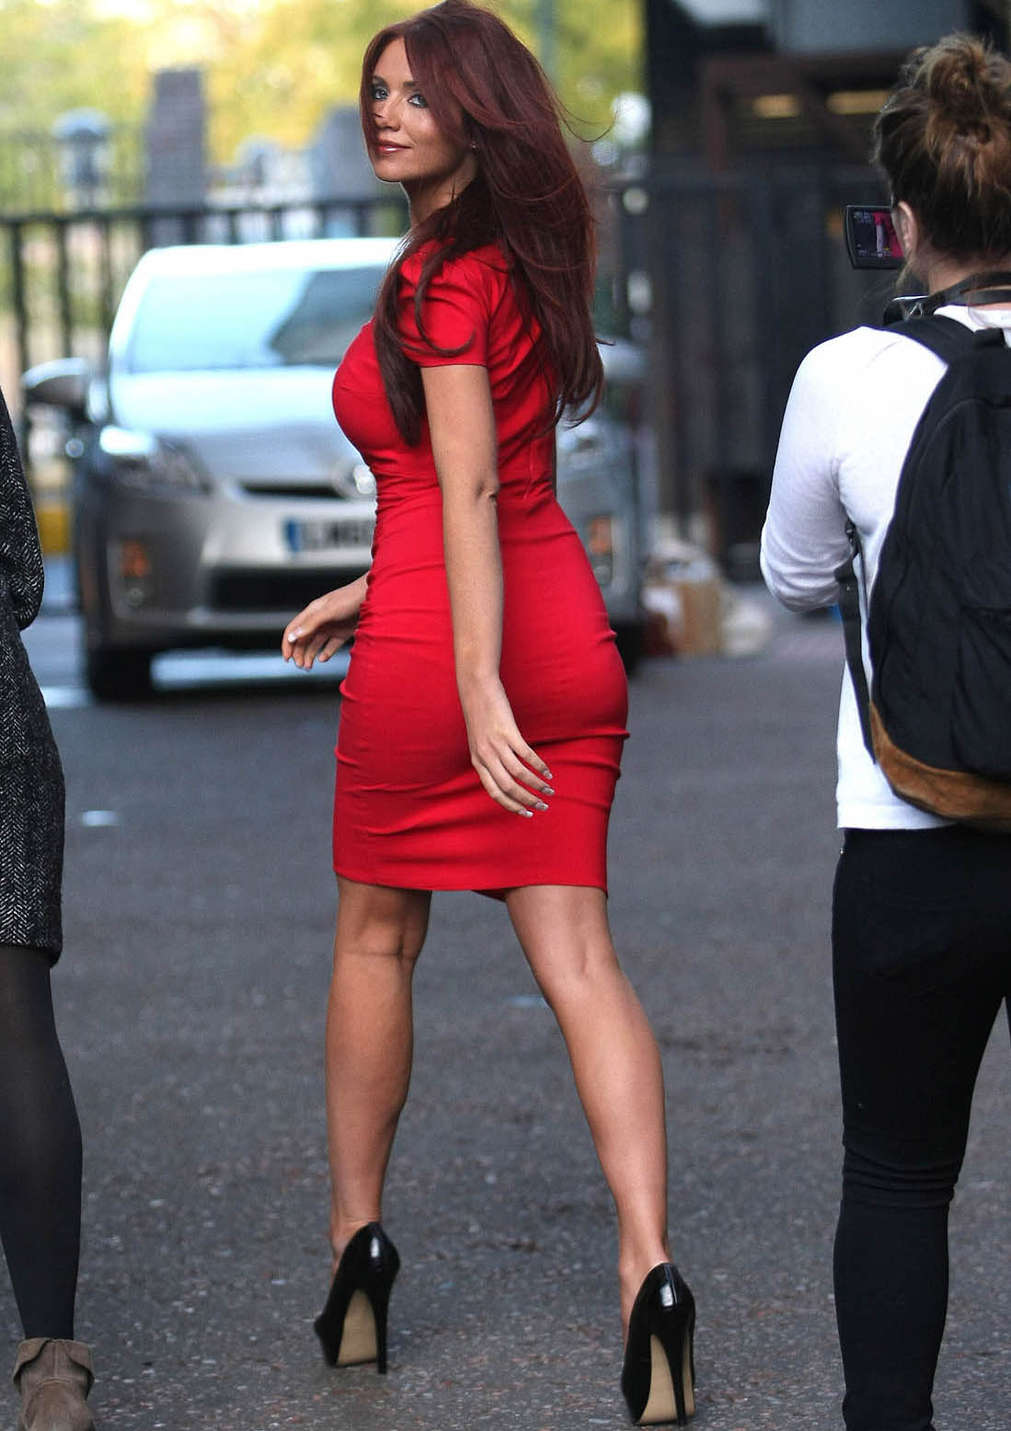 482e1692493 Amy Childs Hot In Red Dress in London-08 – GotCeleb